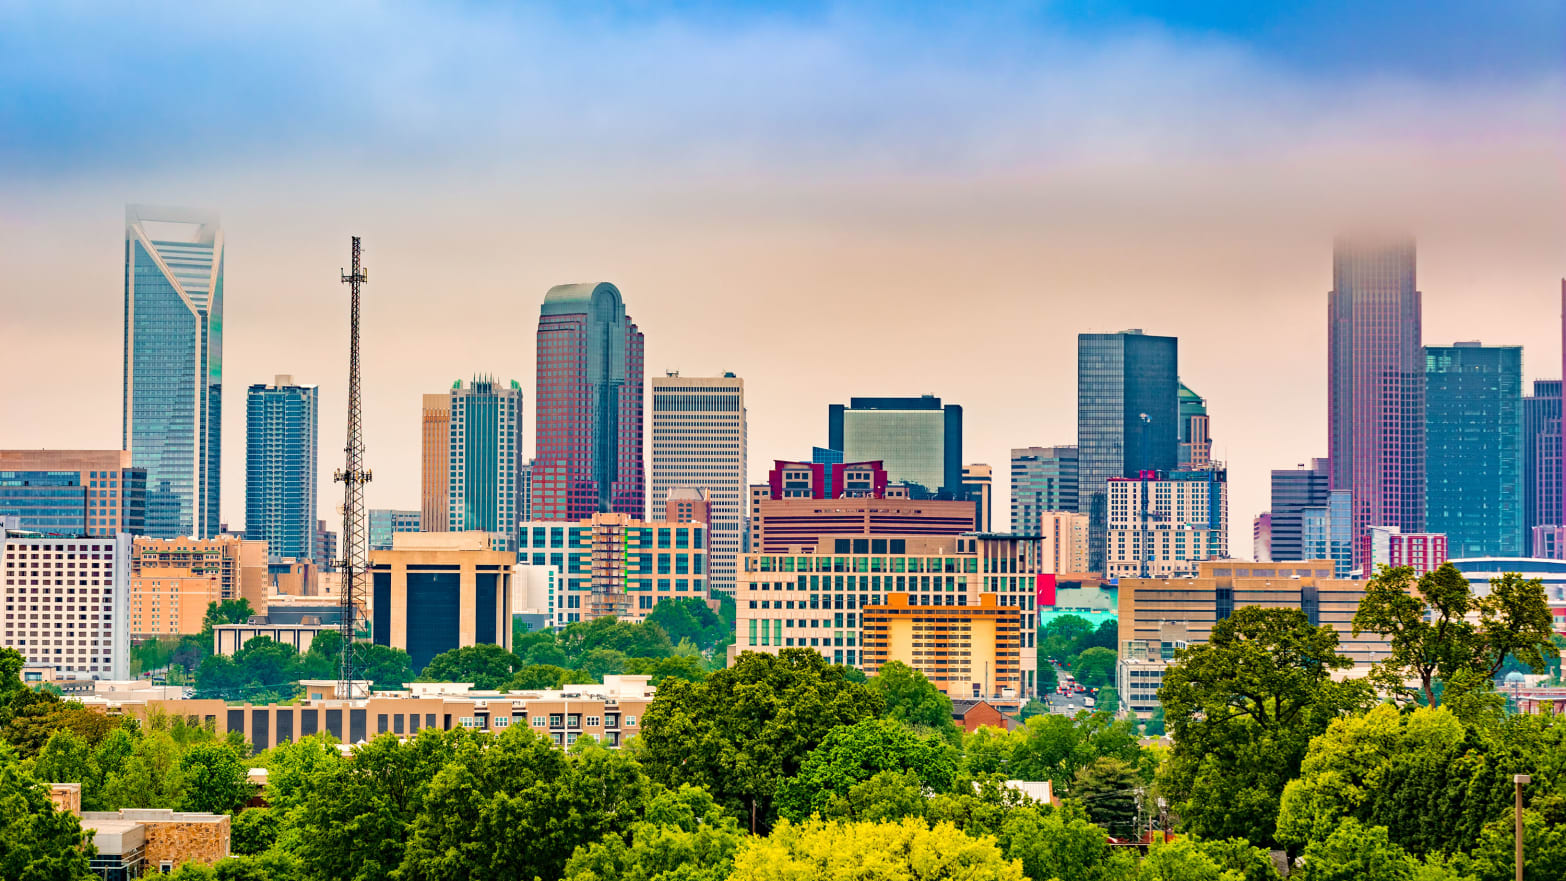 Charlotte, North Carolina Is So 20th Century And That's Its Charm